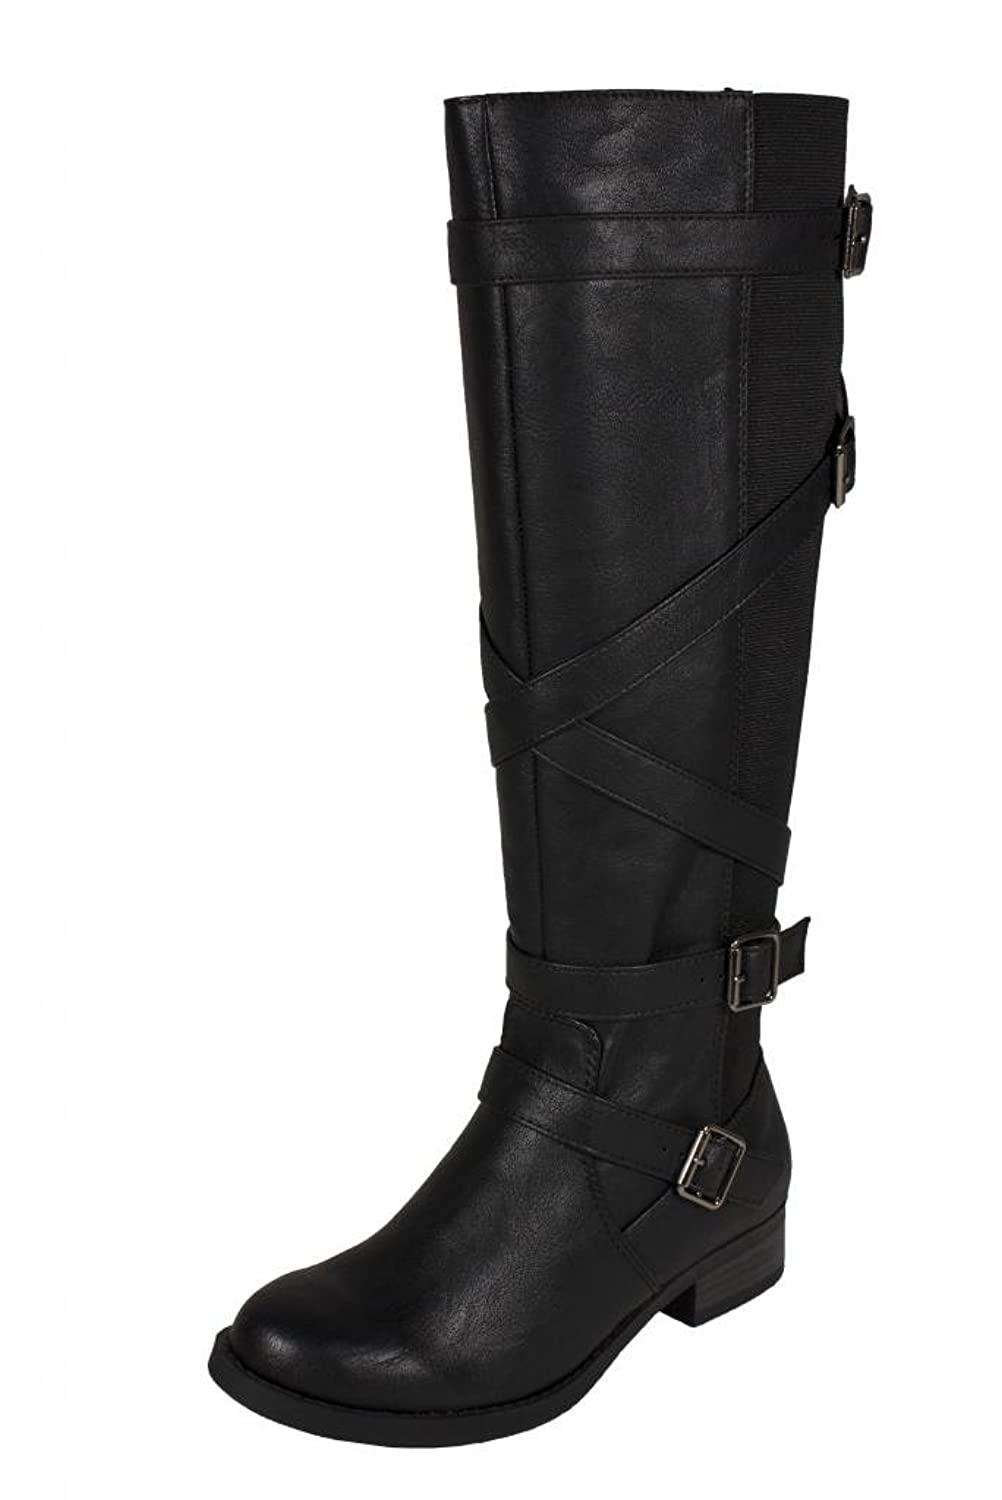 Women's Black Knee High Strappy Buckle Boots - DeluxeAdultCostumes.com